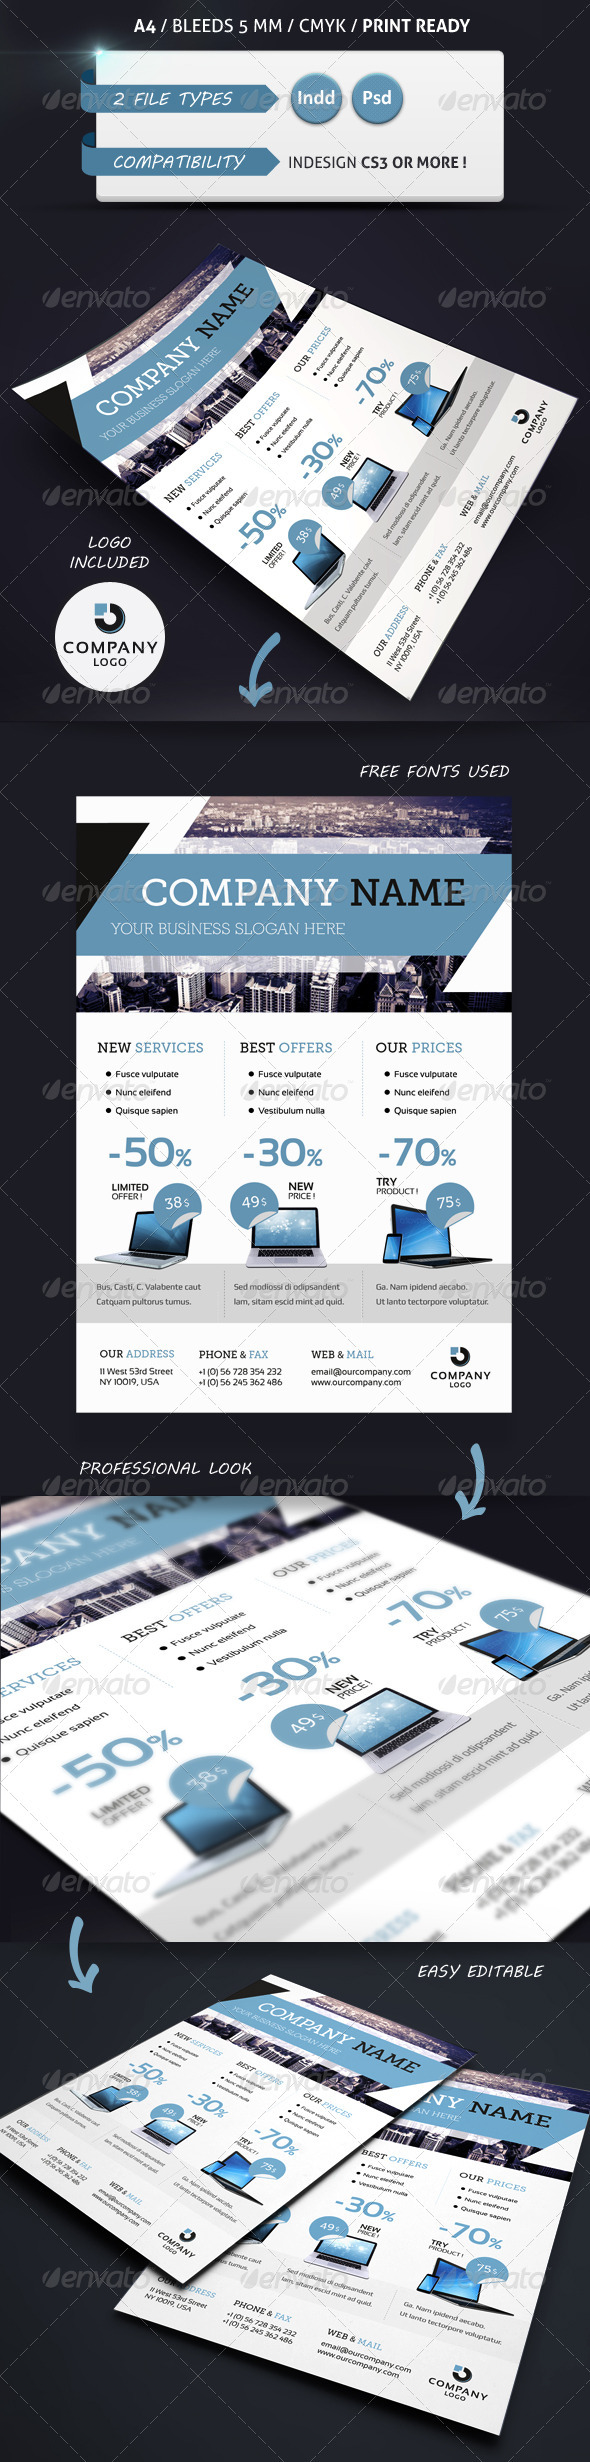 Corporate Business Flyer Template A4 - Corporate Flyers